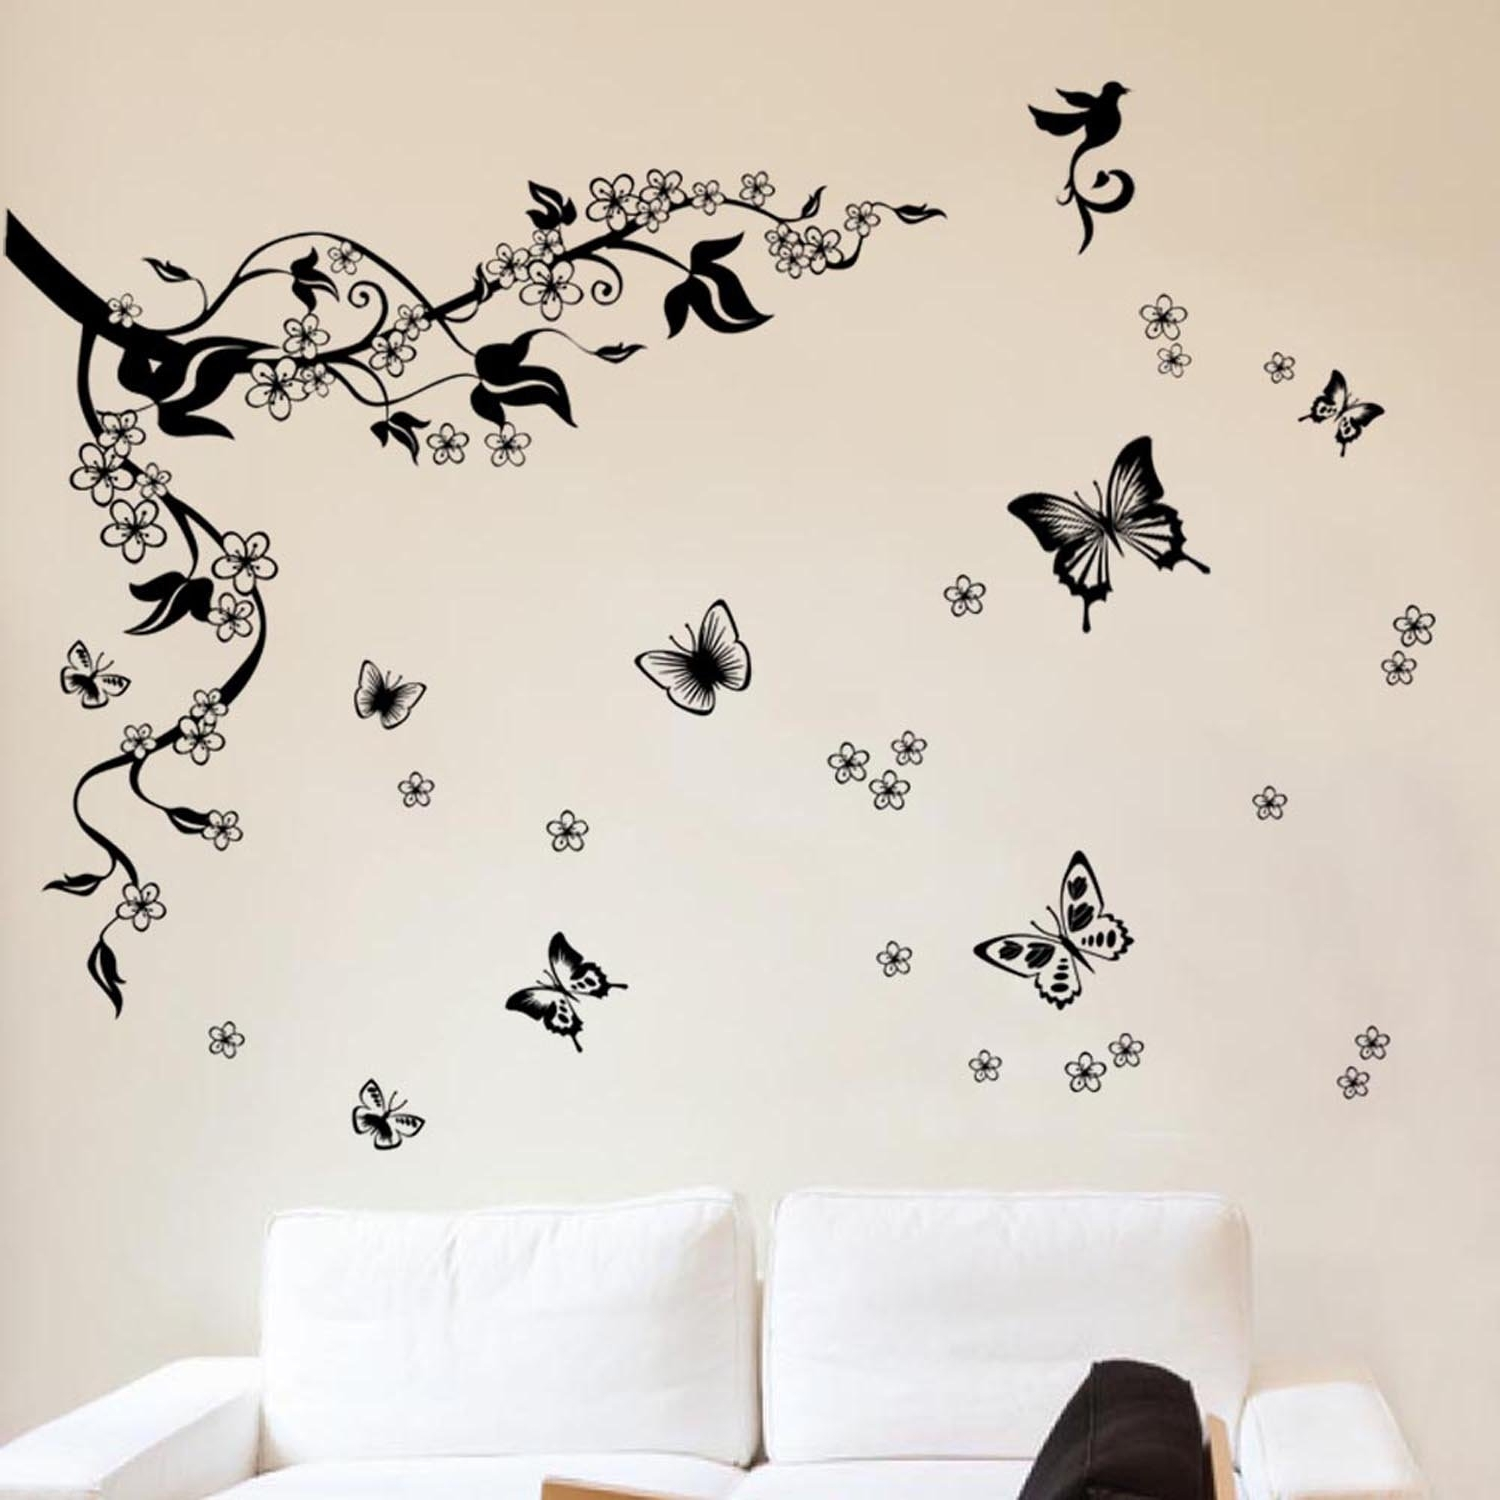 Wall Art Stickers With Popular Removable Wall Art Stickers: Amazon.co (View 12 of 15)